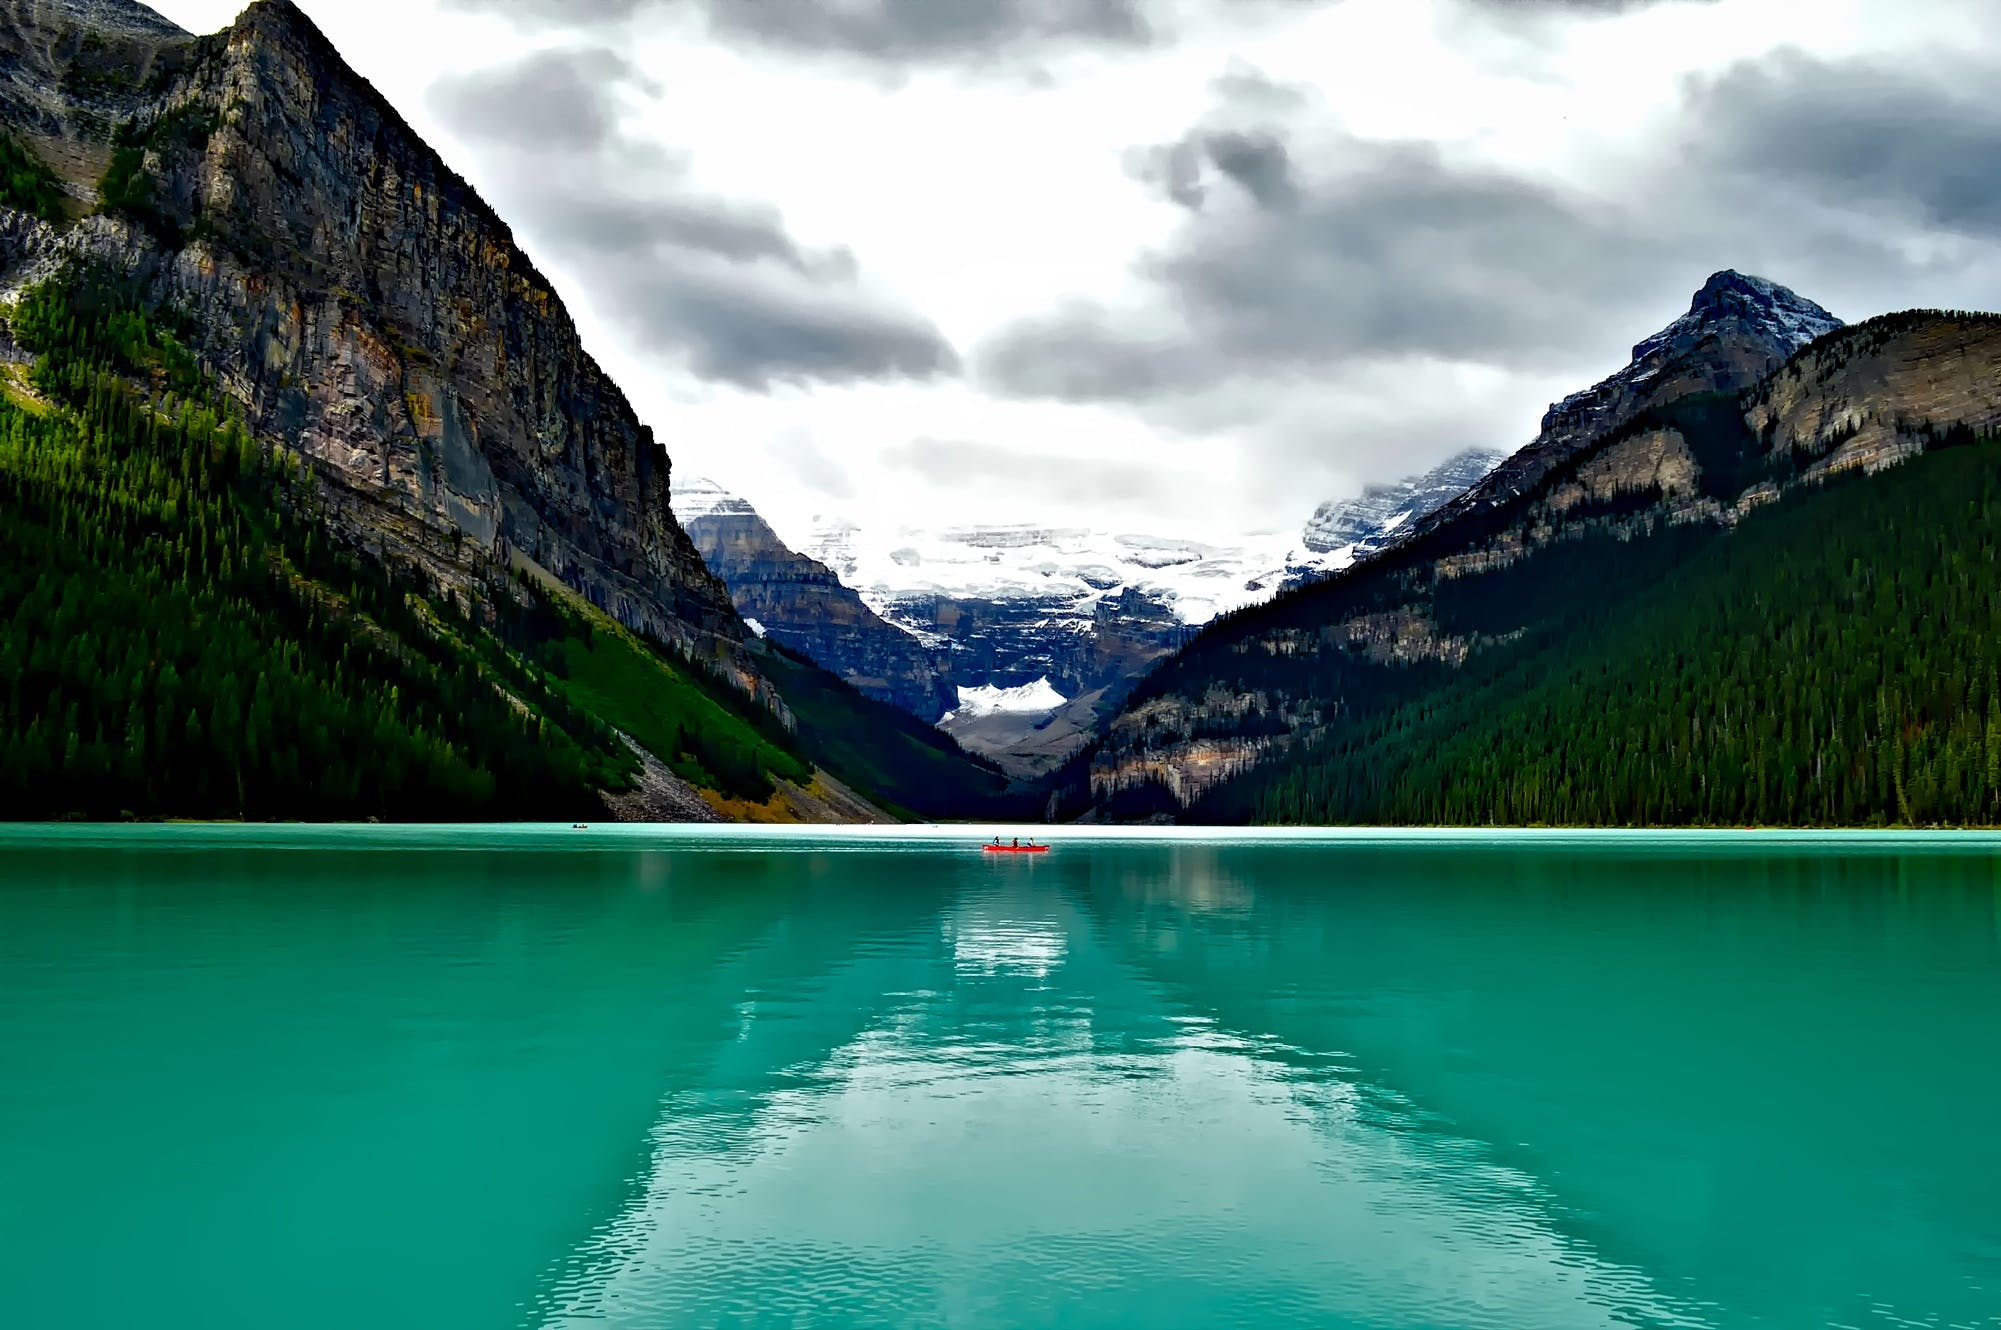 Body of Water Surround by Mountains